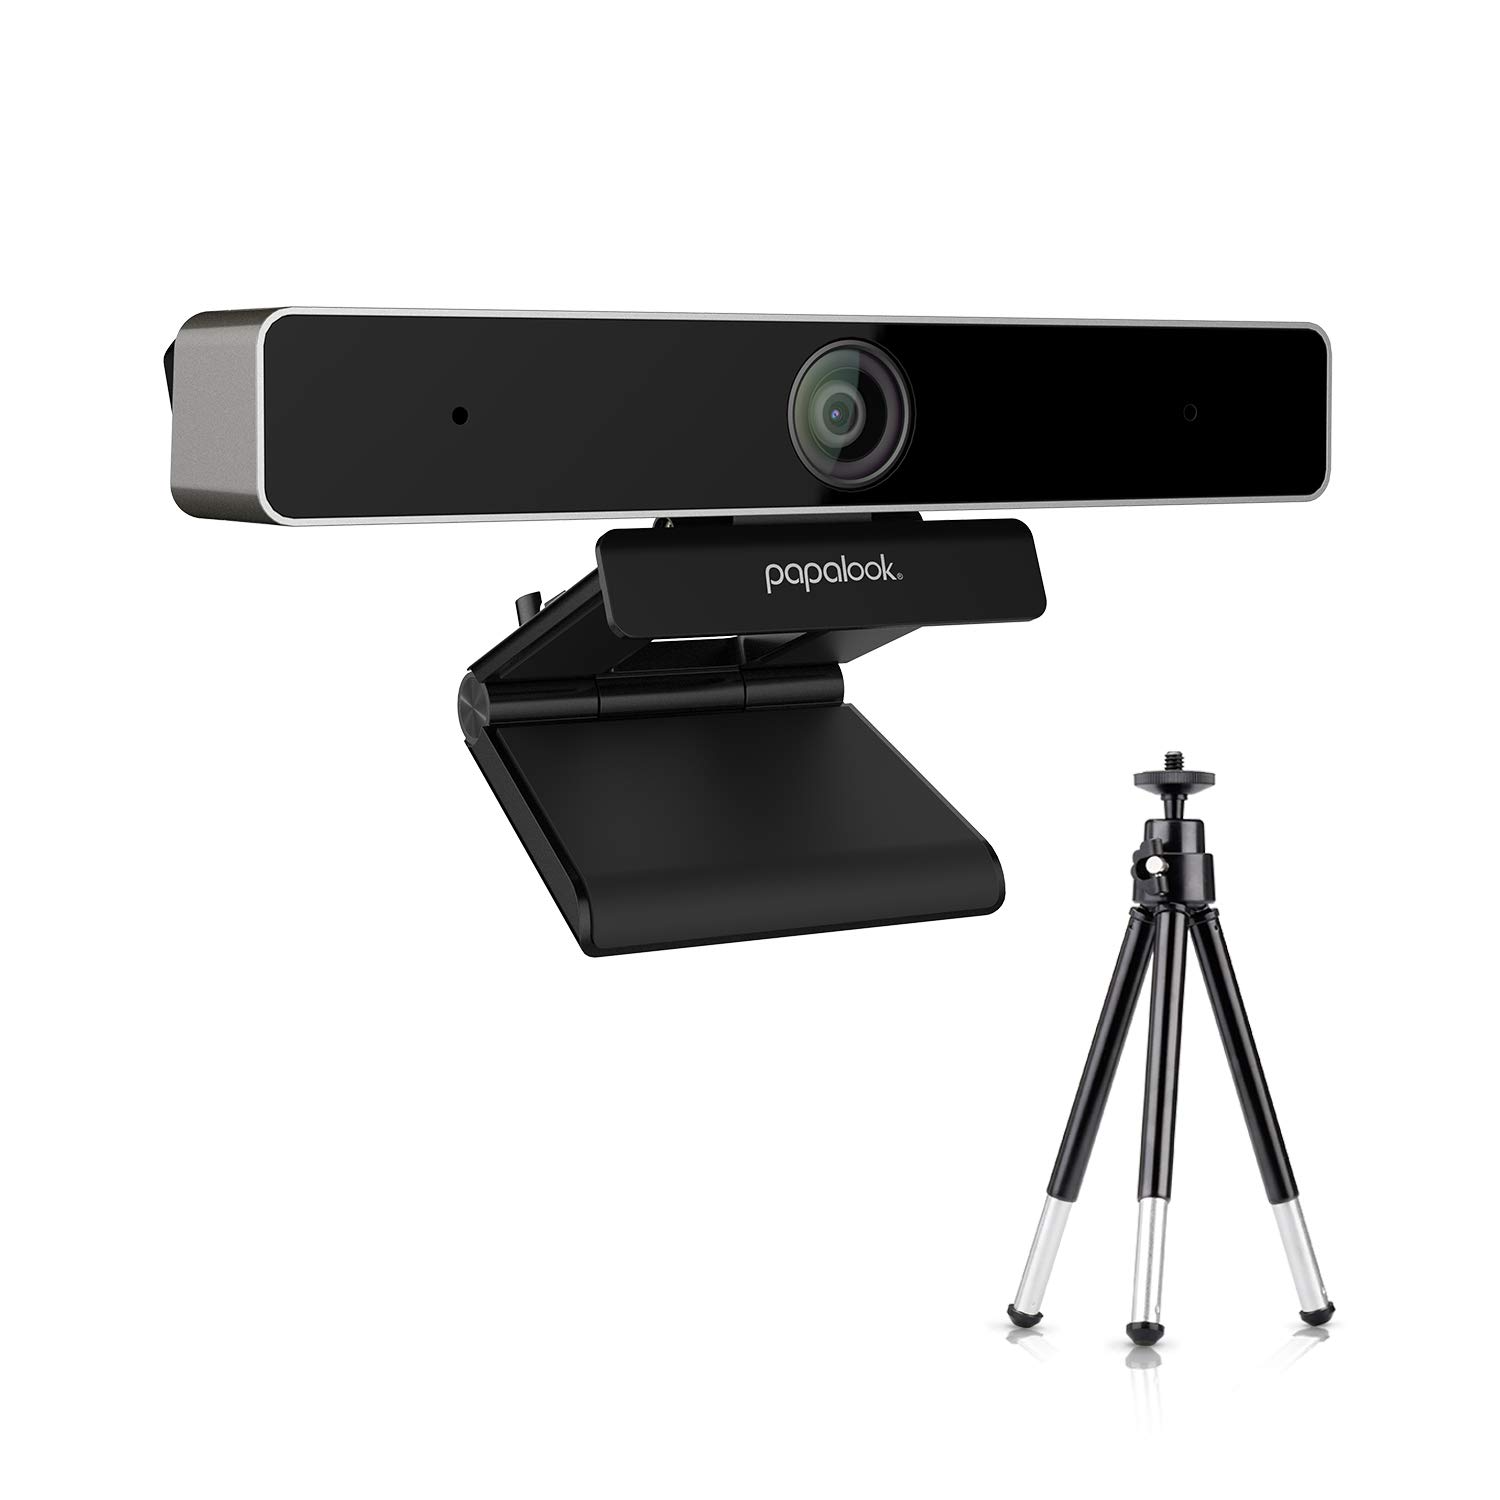 PAPALOOK PA920 2K Live Webcam with Dual Microphone, Privacy Cover and Tripod for Video Conferencing